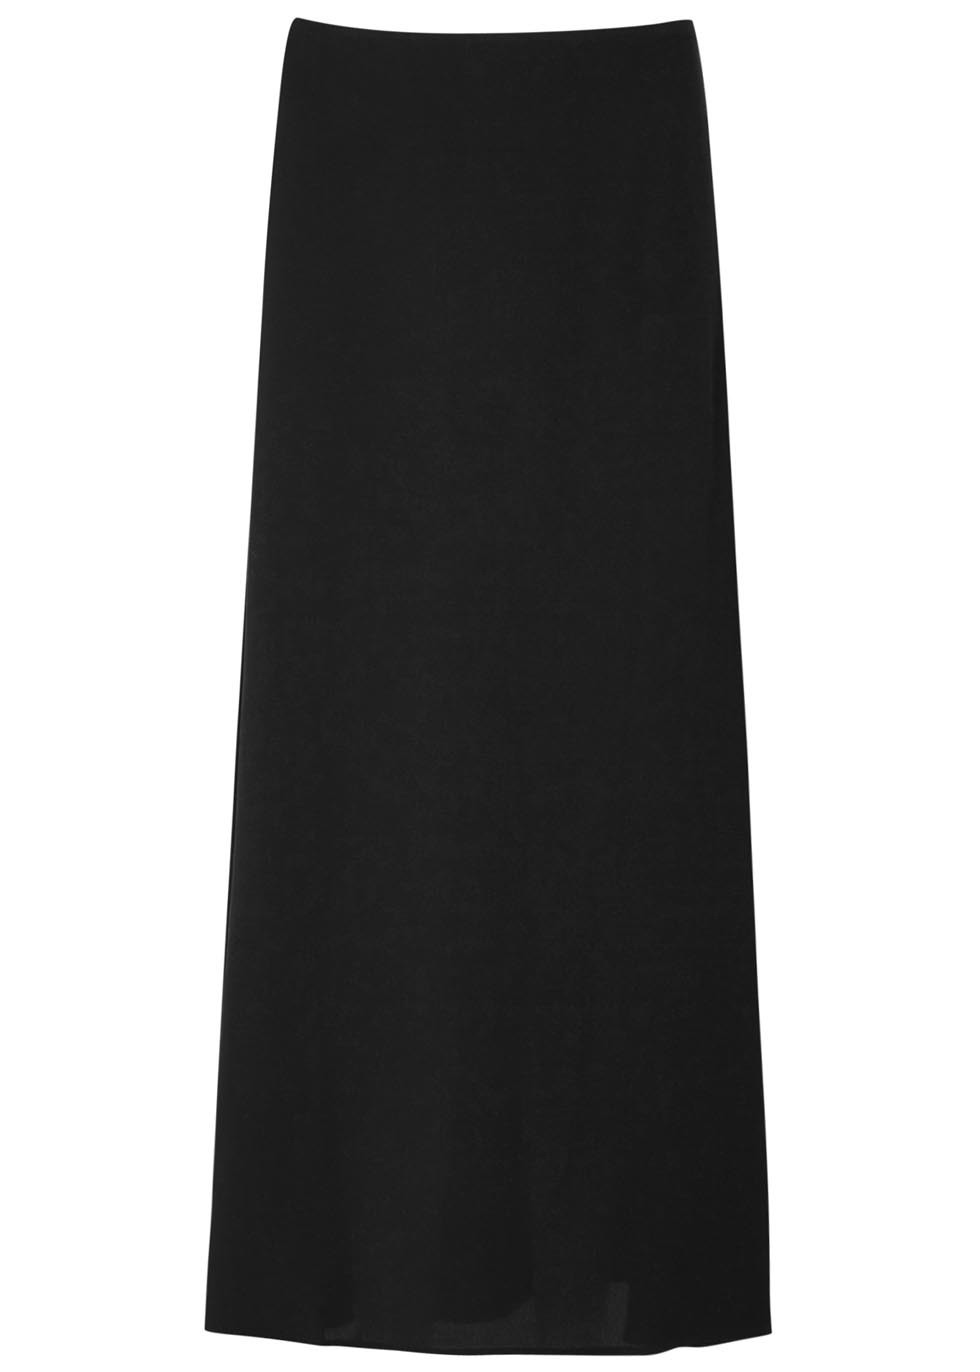 Black Silk Georgette Maxi Skirt - pattern: plain; length: ankle length; fit: body skimming; waist: mid/regular rise; predominant colour: black; occasions: evening; style: maxi skirt; fibres: silk - 100%; texture group: silky - light; pattern type: fabric; season: s/s 2016; wardrobe: event